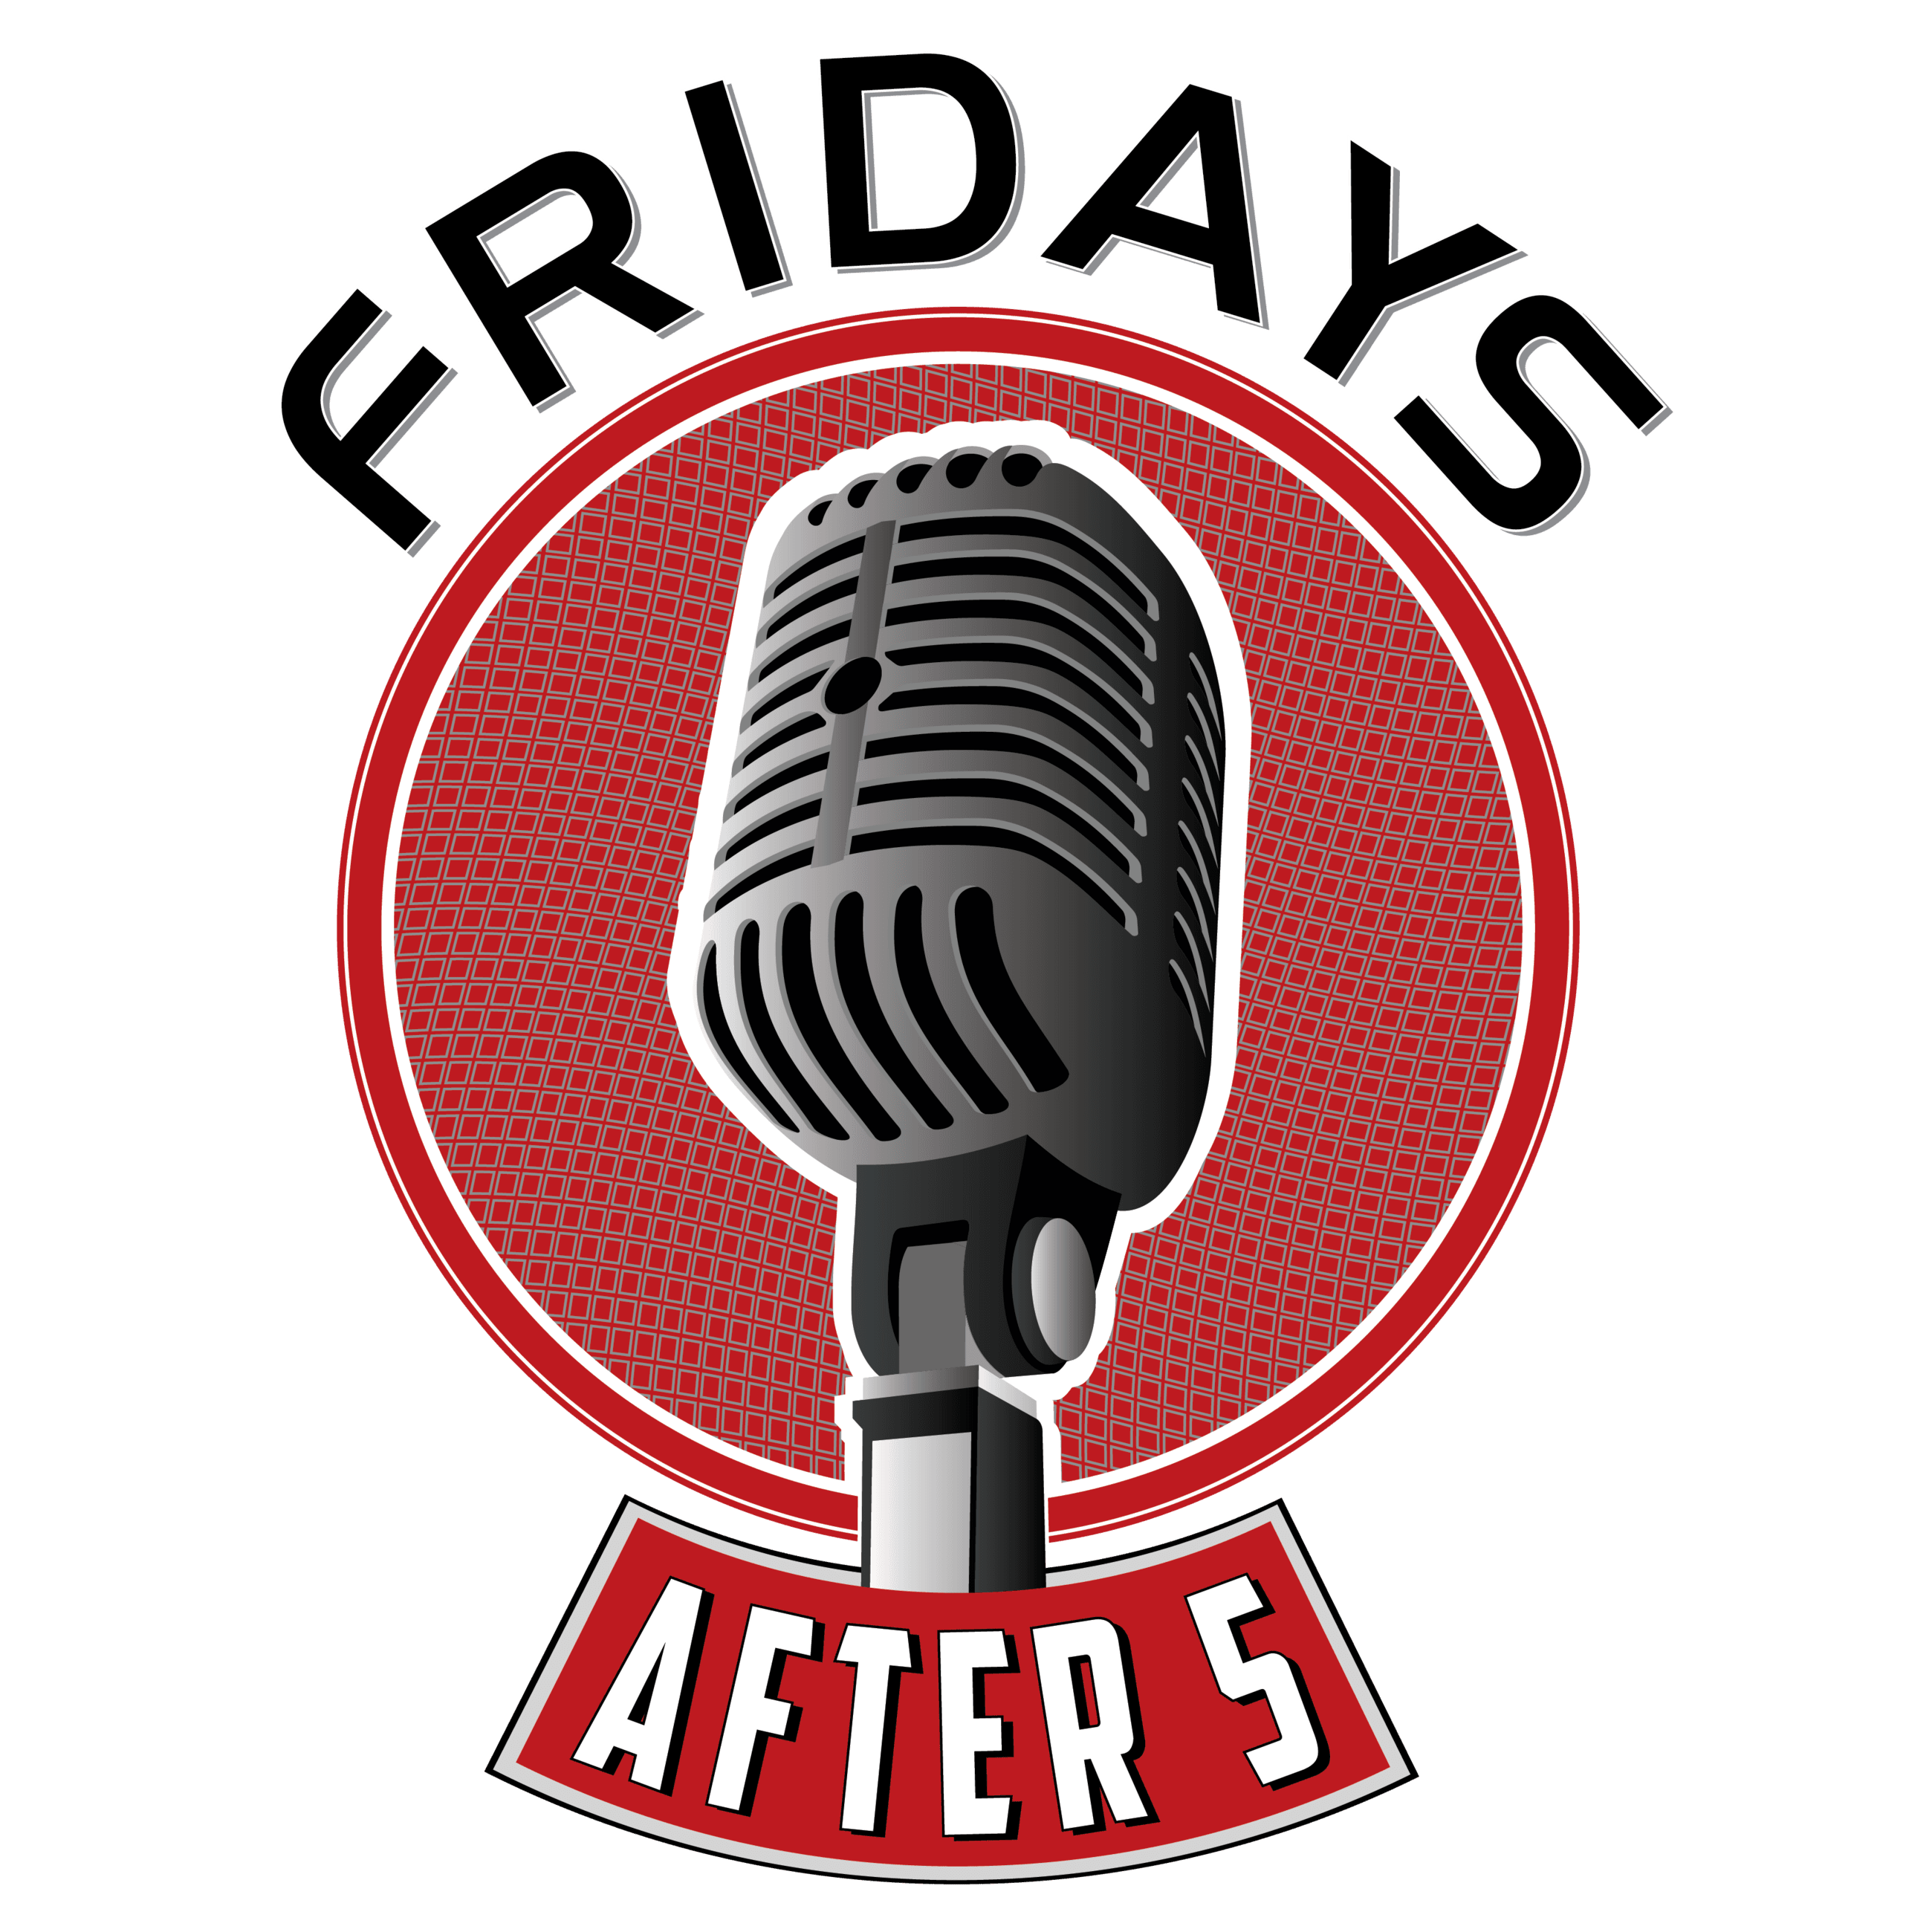 Fridays After 5 Logo with microphone in the middle